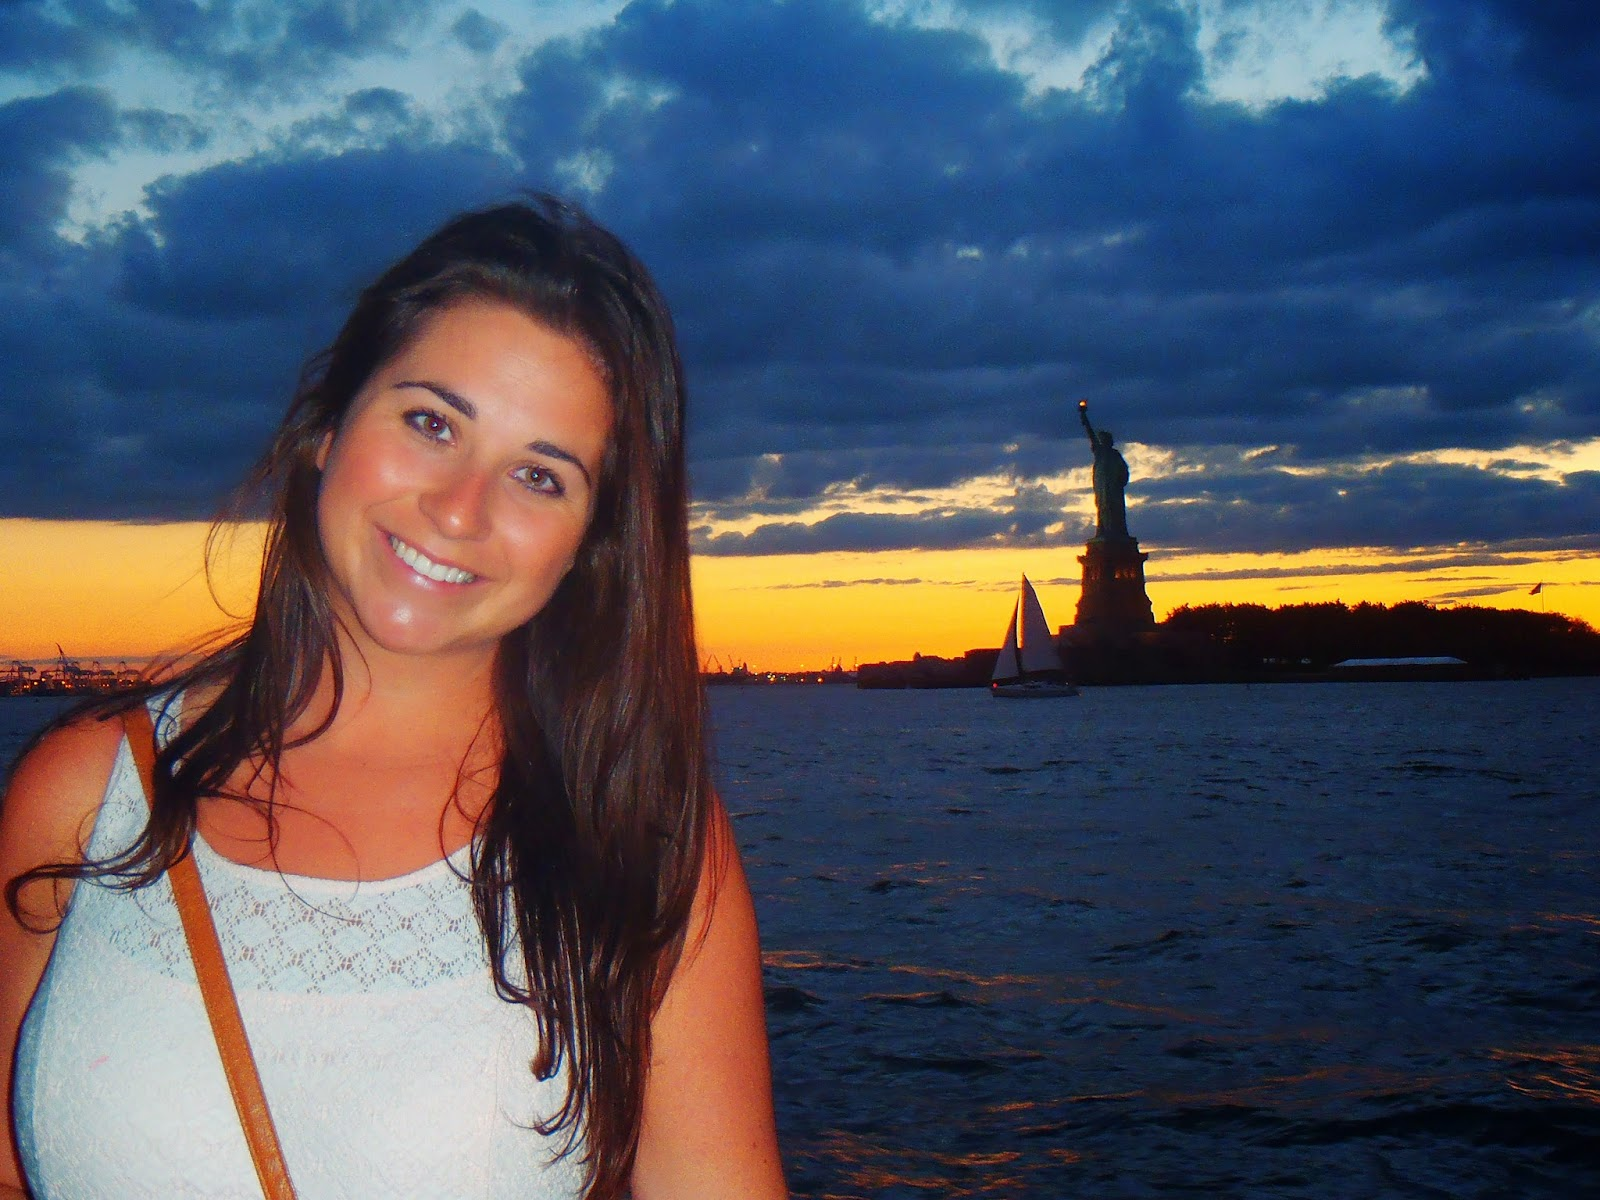 me at sunset in front of the statue of liberty